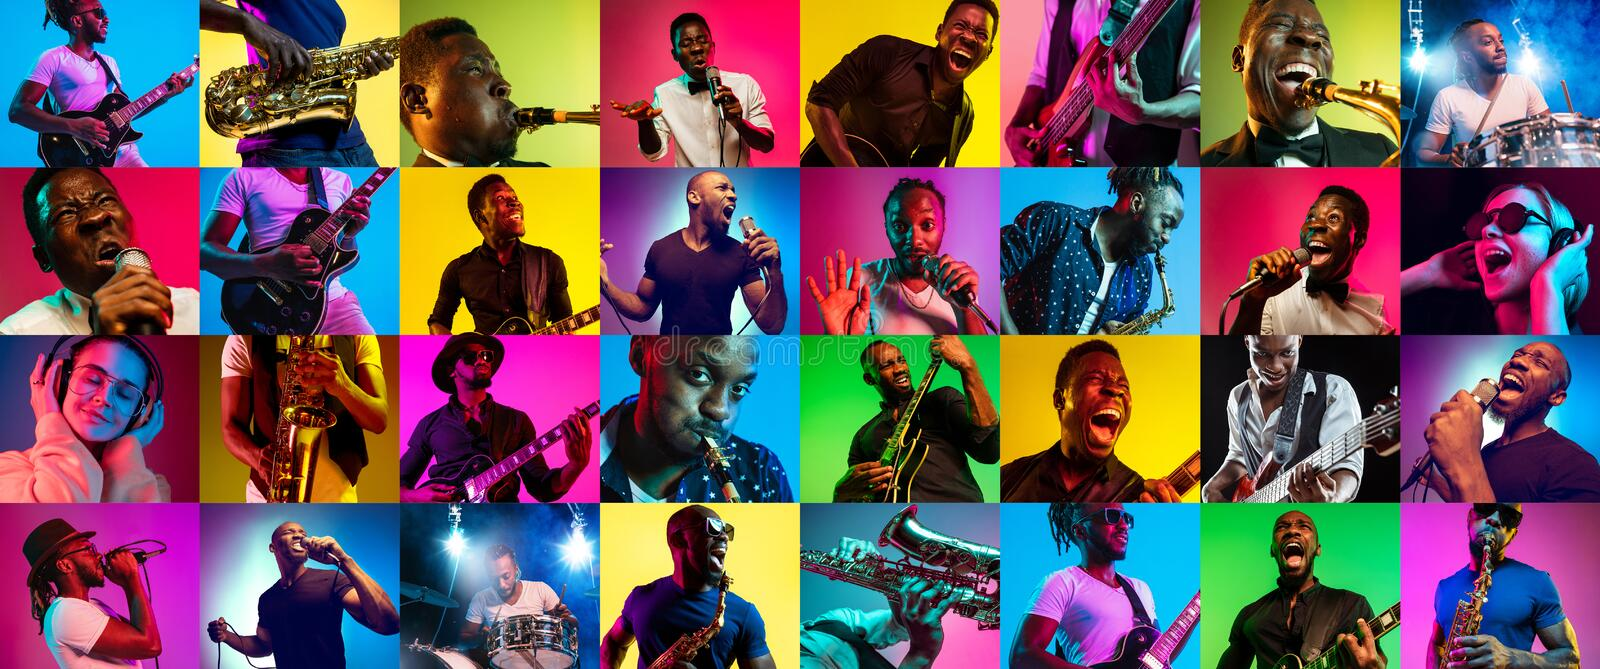 Collage of young people in neon light on multicolored background. Collage of different photos of 5 young people in neon light on multicolored background. Listen stock images